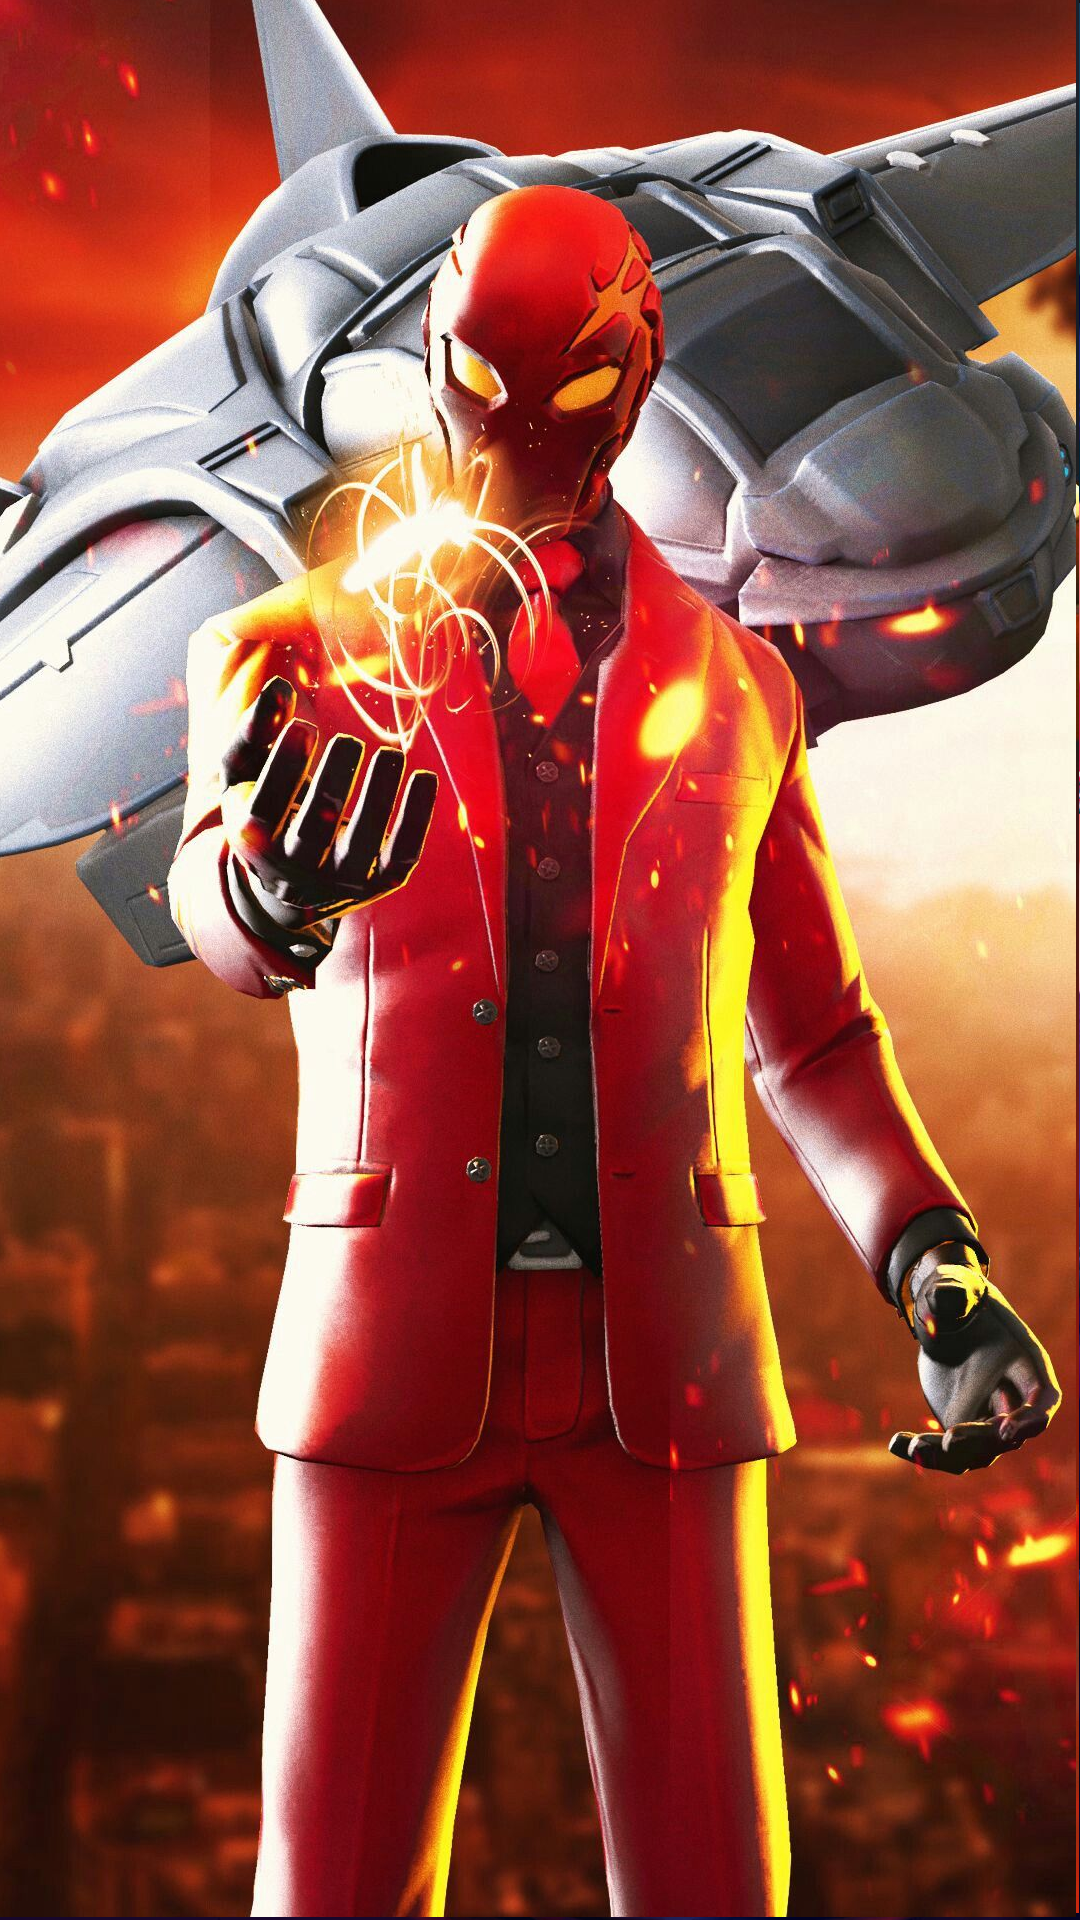 Fortnite Wallpapers Gaming Wallpapers Best Gaming Wallpapers Epic Games Fortnite